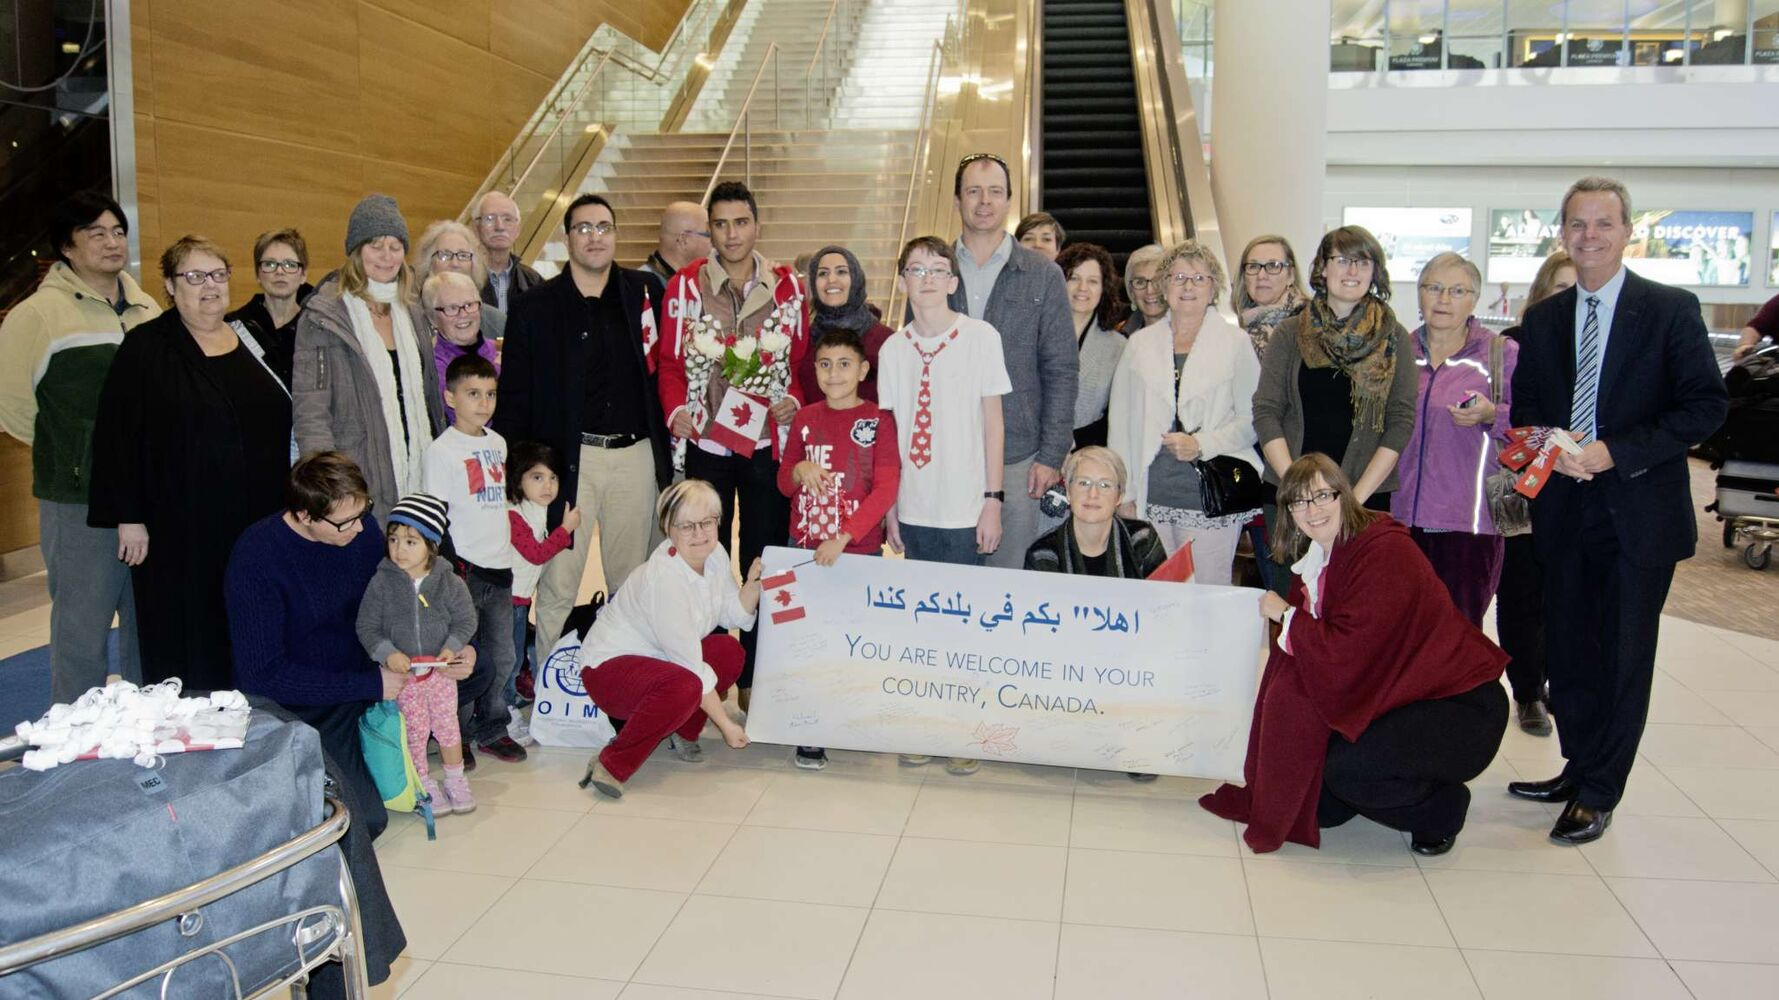 The South Osborne Syrian Refugee Initiative welcomed Tarek Al Abdellah (centre, holding flowers) to Winnipeg on Oct. 25. He is the first of 13 people the group has sponsored to arrive in Canada. (Danielle Da Silva - Sou'wester)